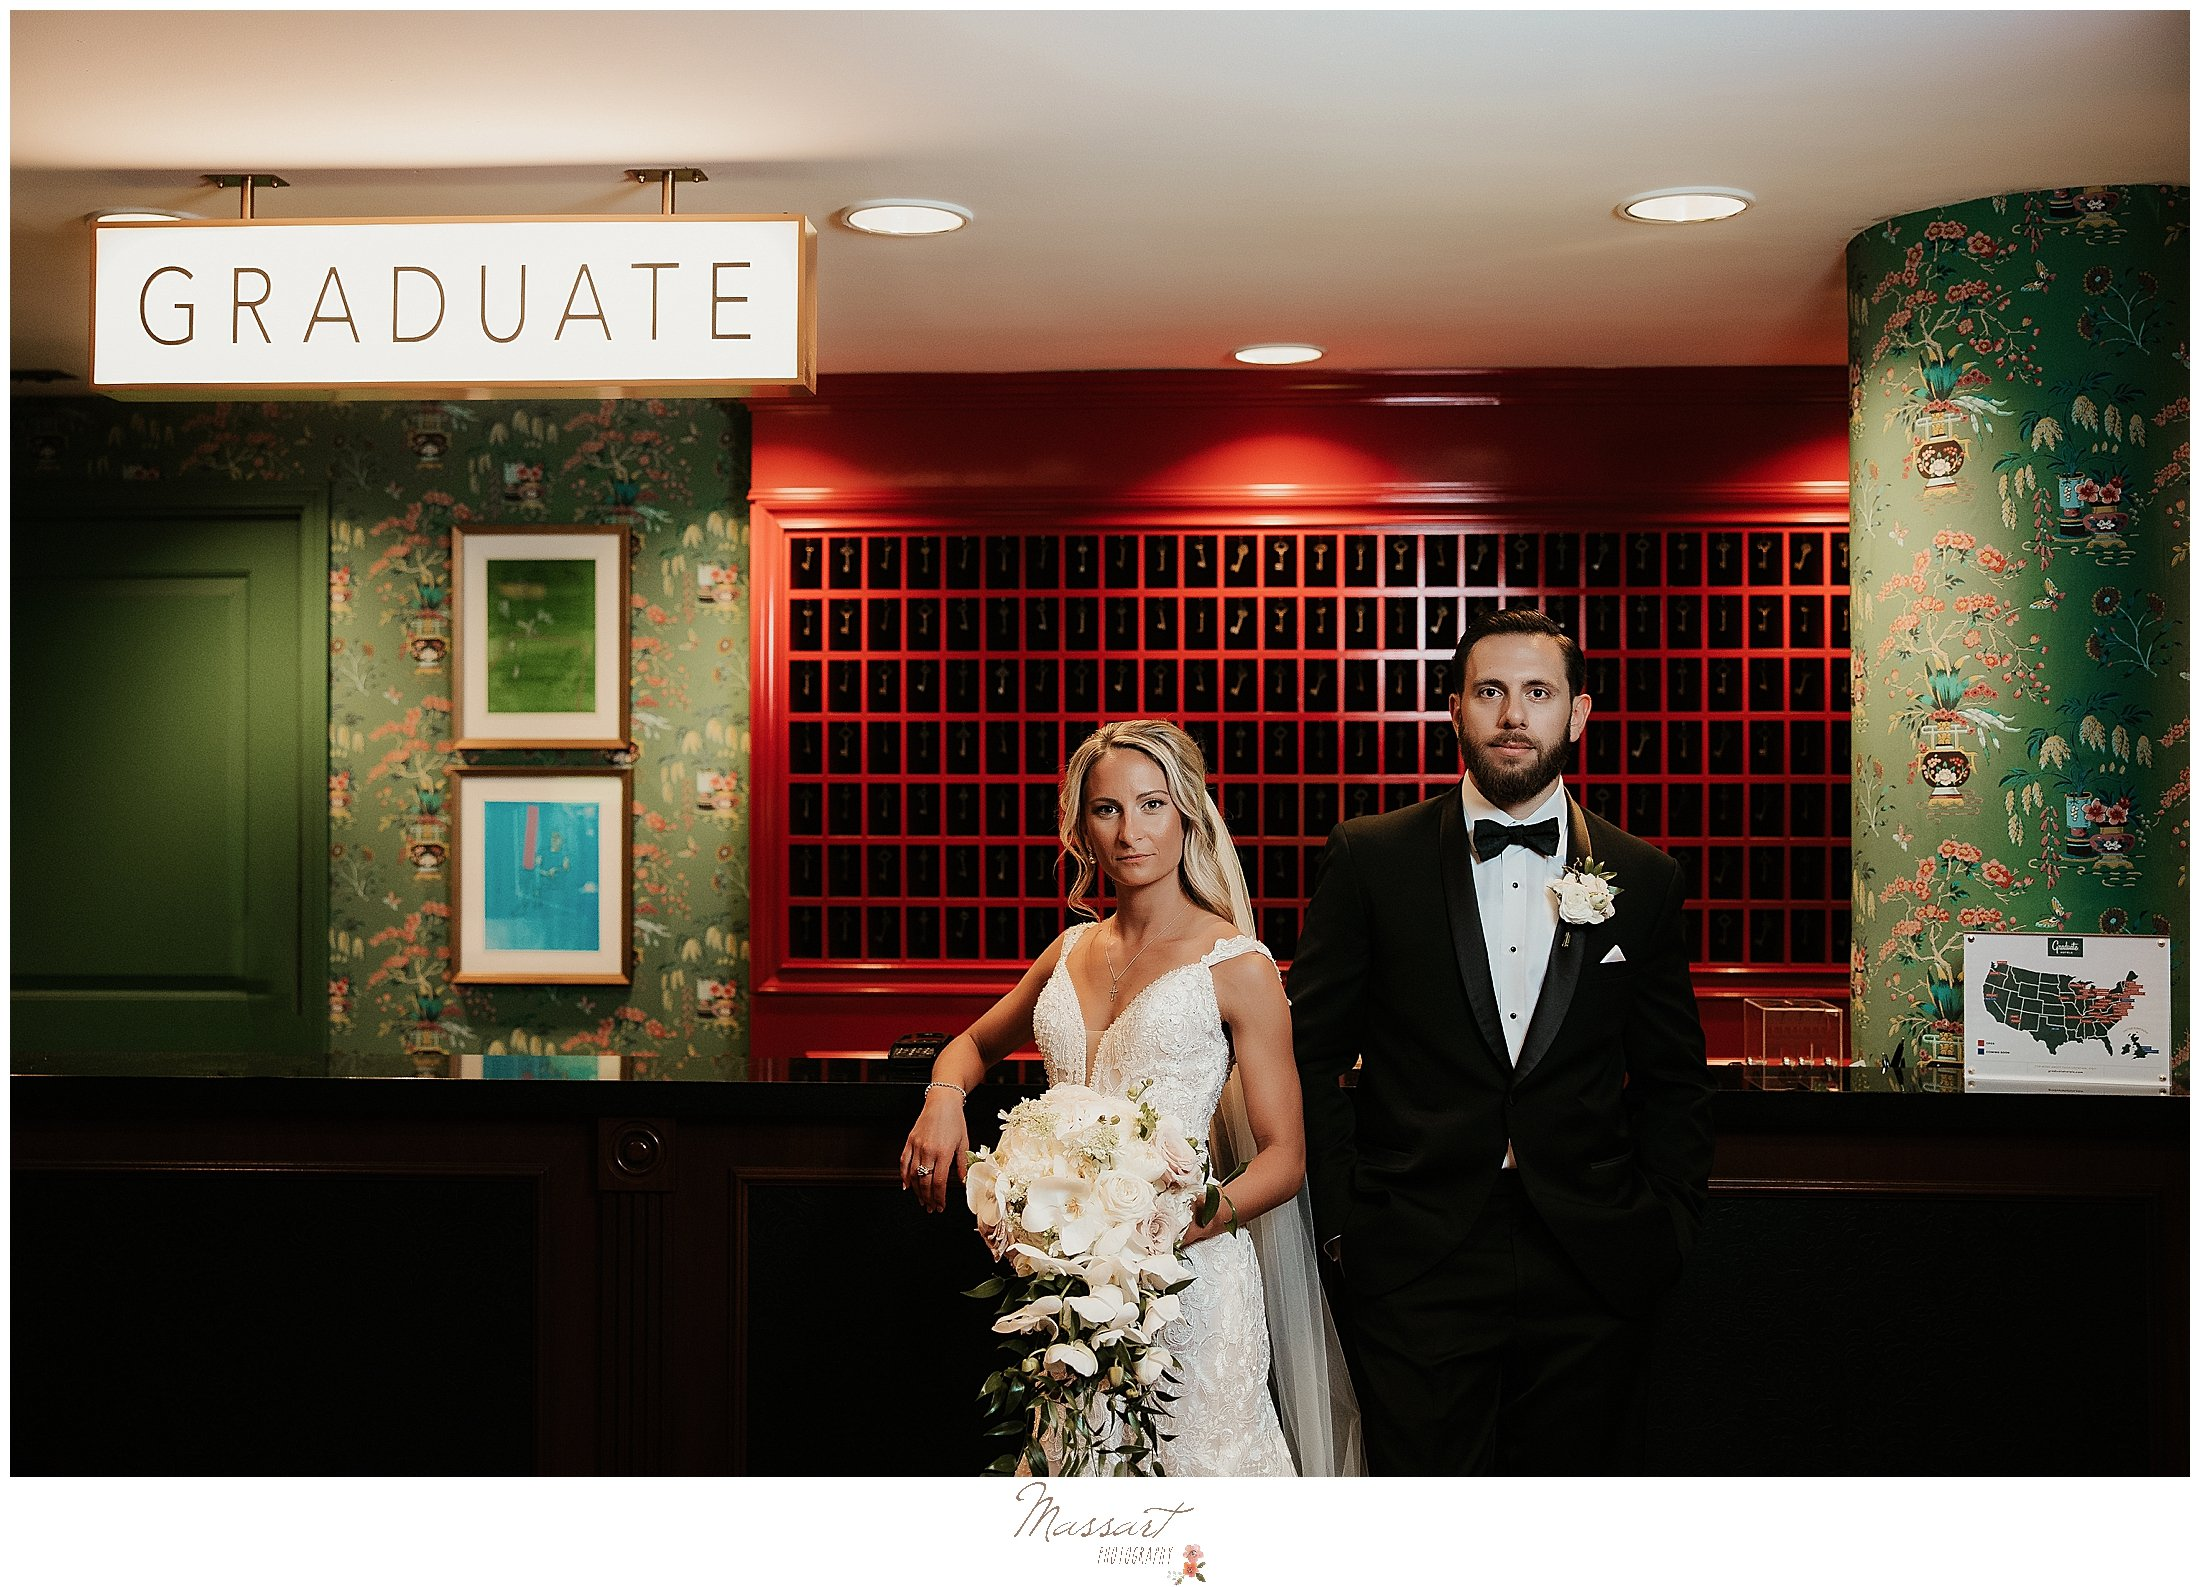 bride and groom pose by front desk before The Graduate Hotel wedding